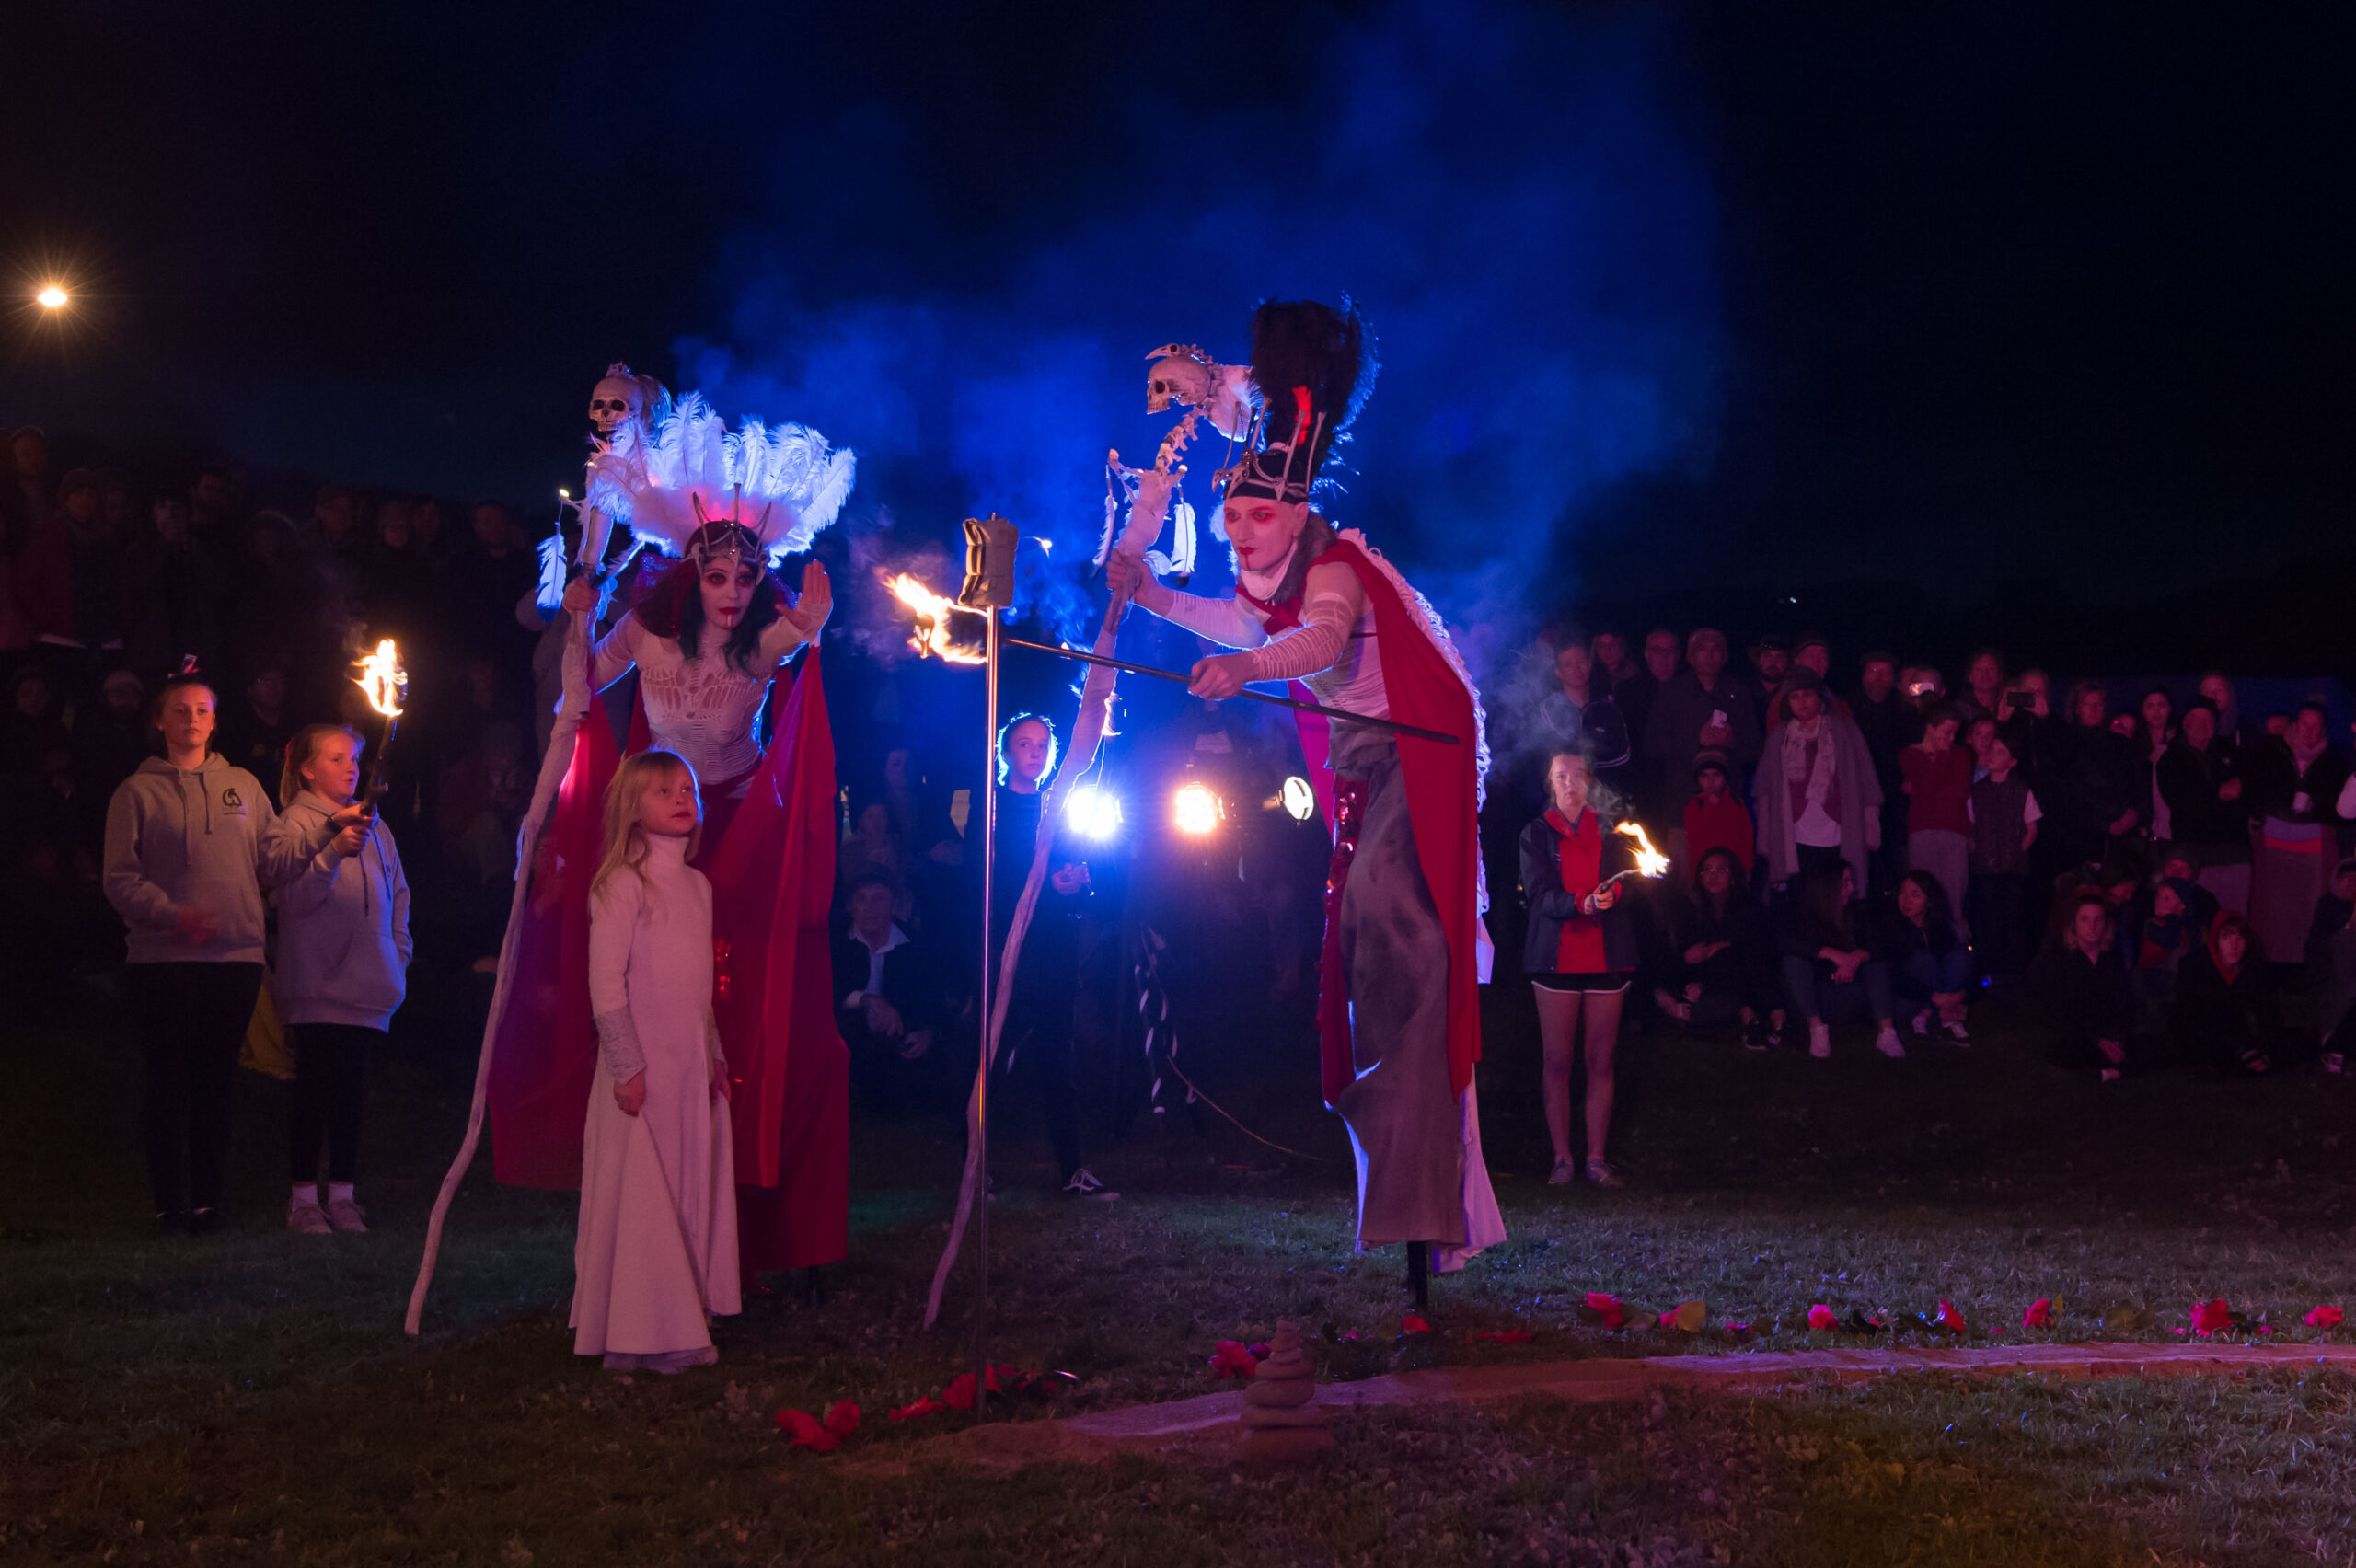 High Priest and High Priestess at WinterWild Festival  Image Credit - Ray Yeo